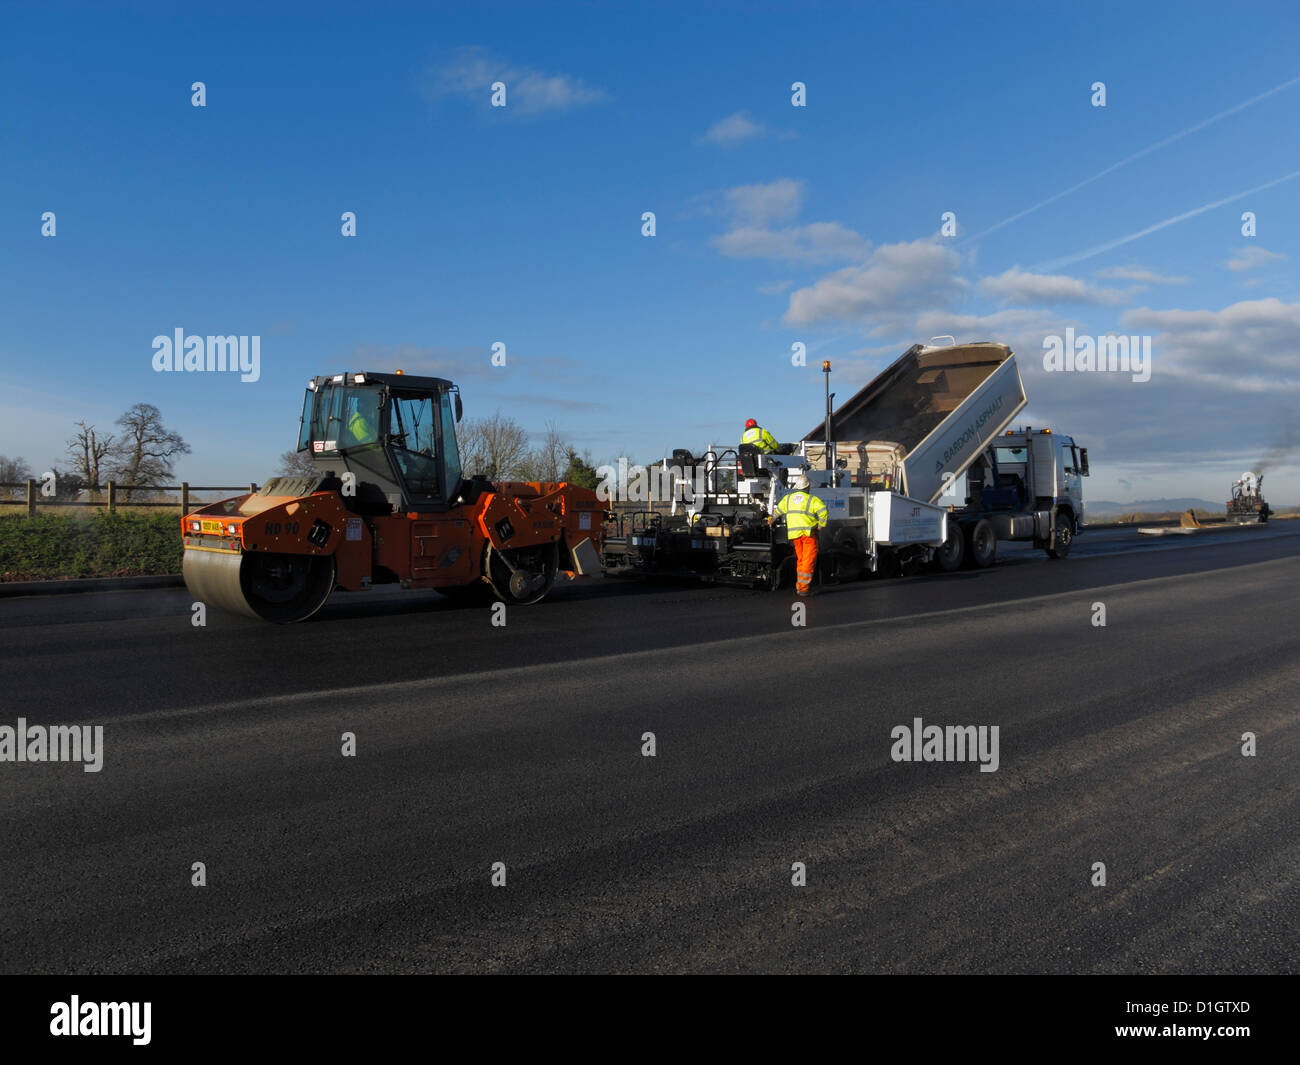 A Civil Engineering contractor highway maintenance gang  laying asphalt road surfacing in UK - Stock Image